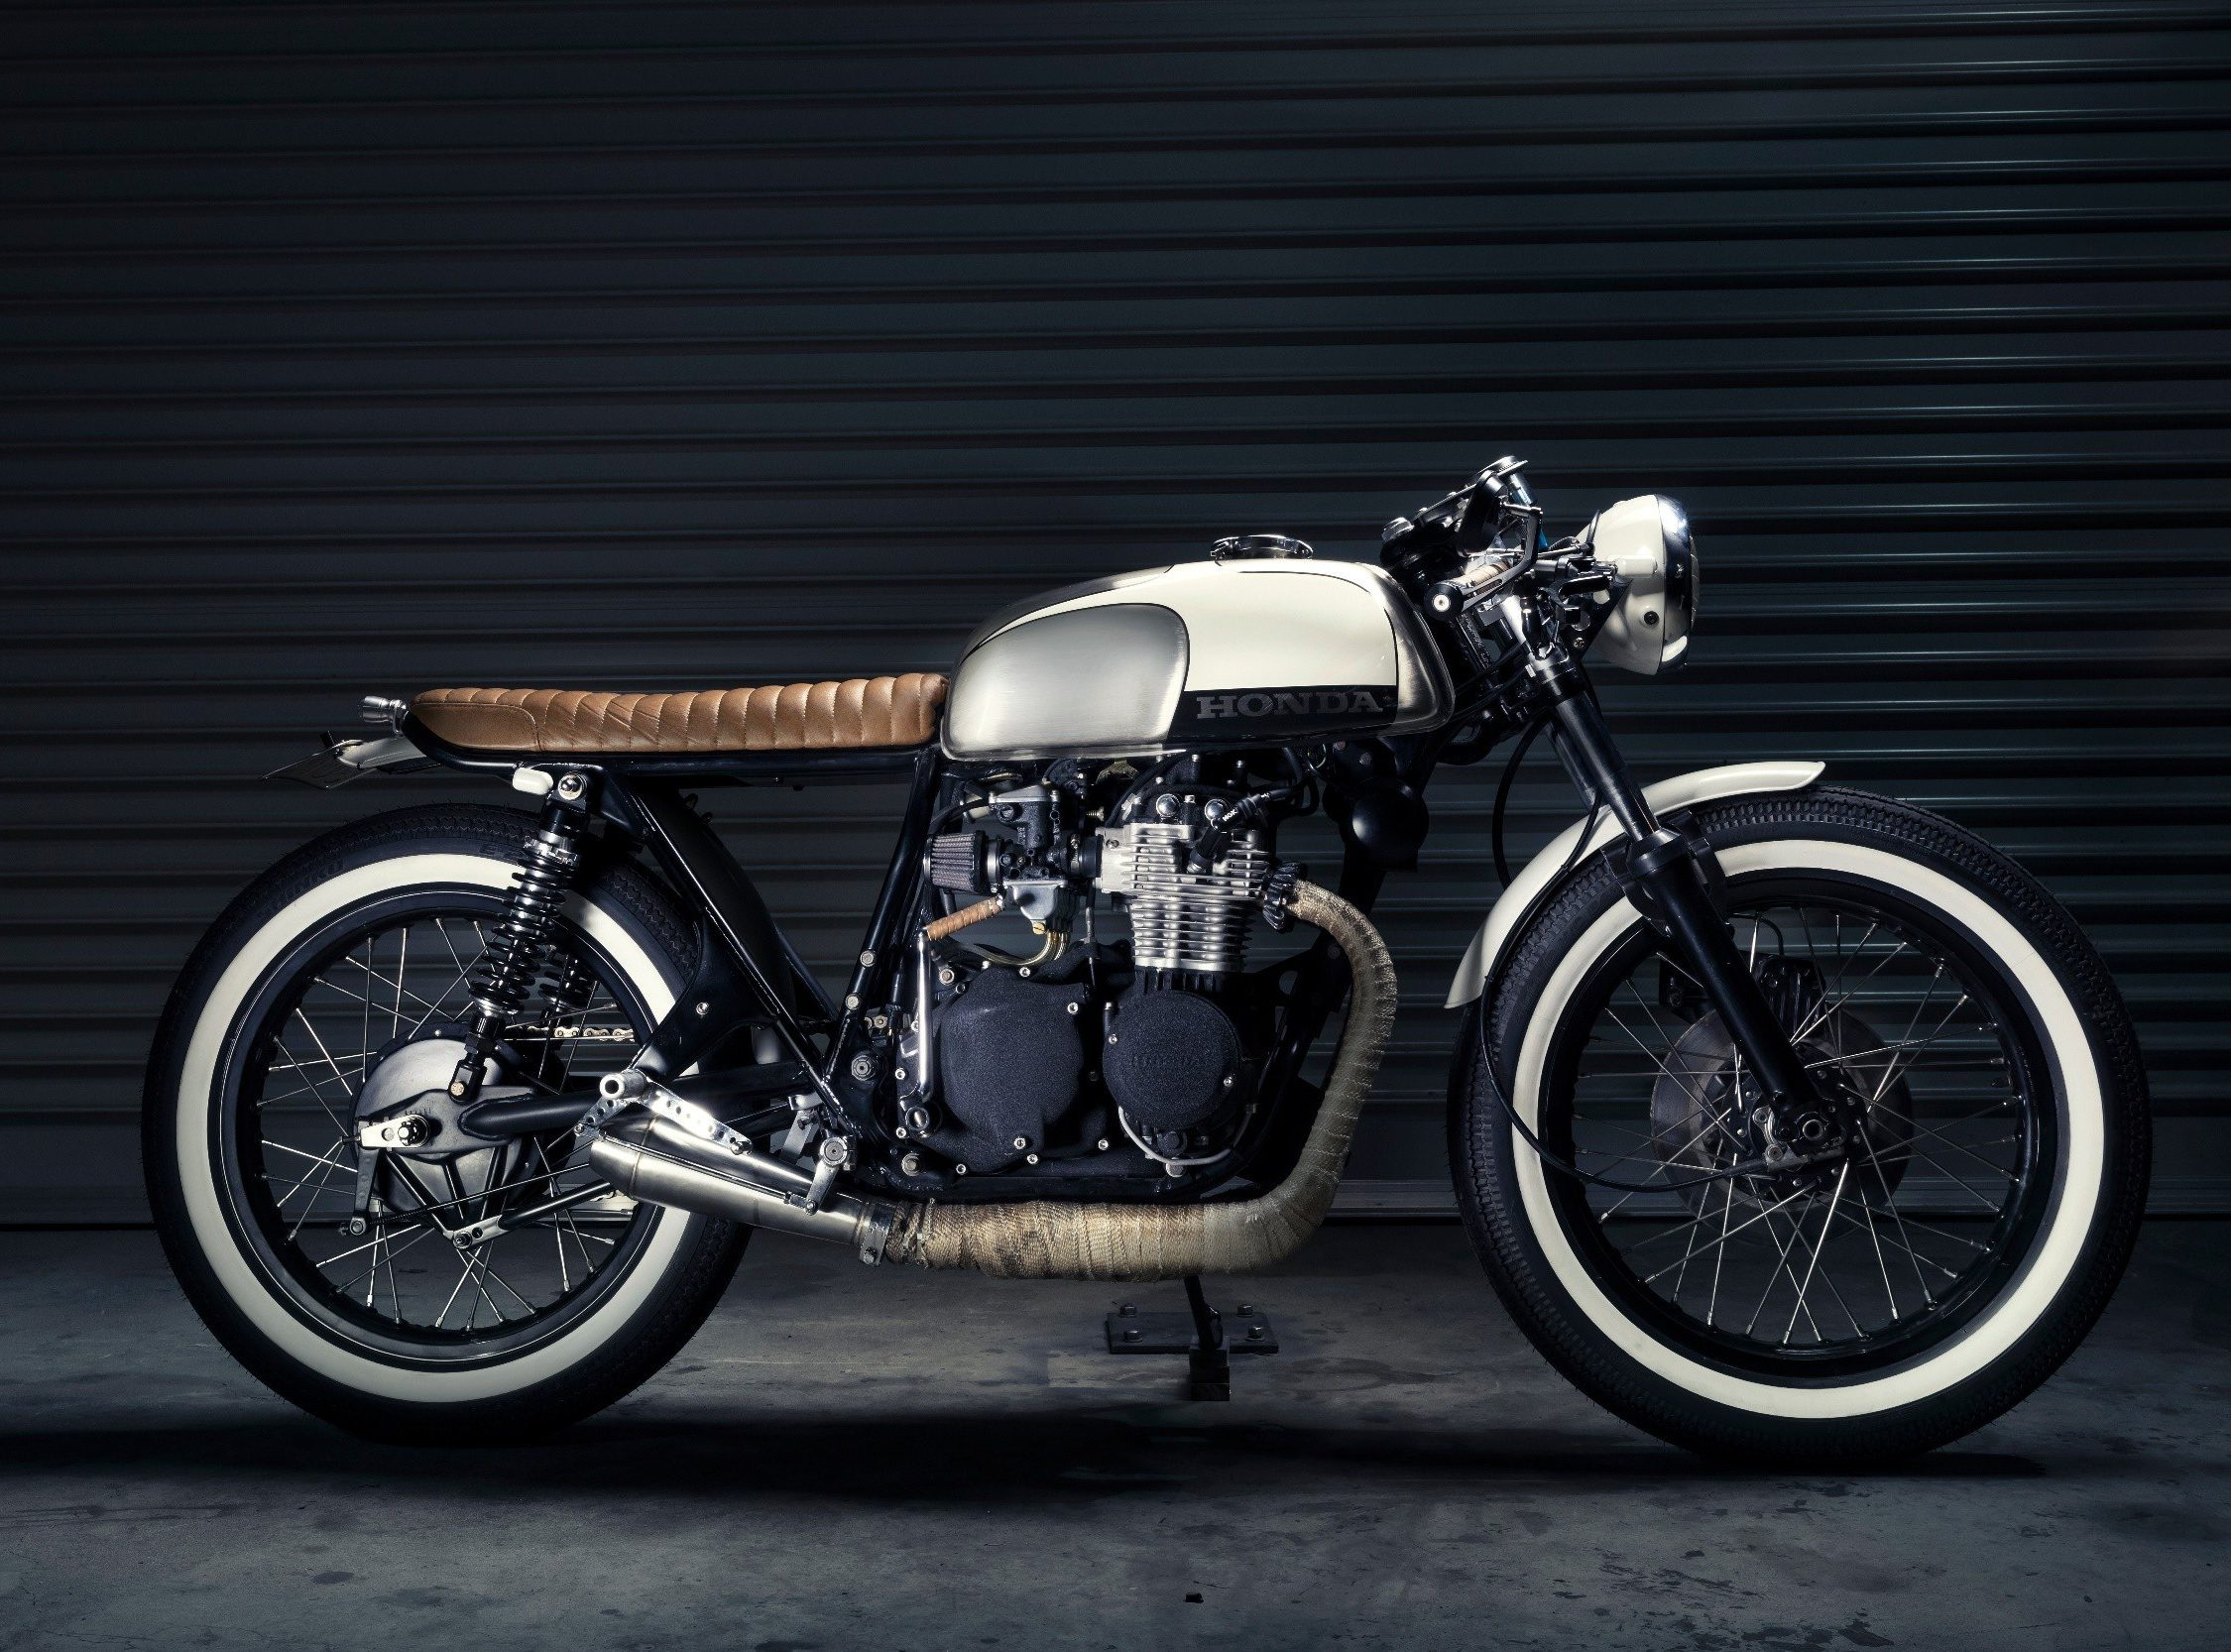 Honda CB350 Build